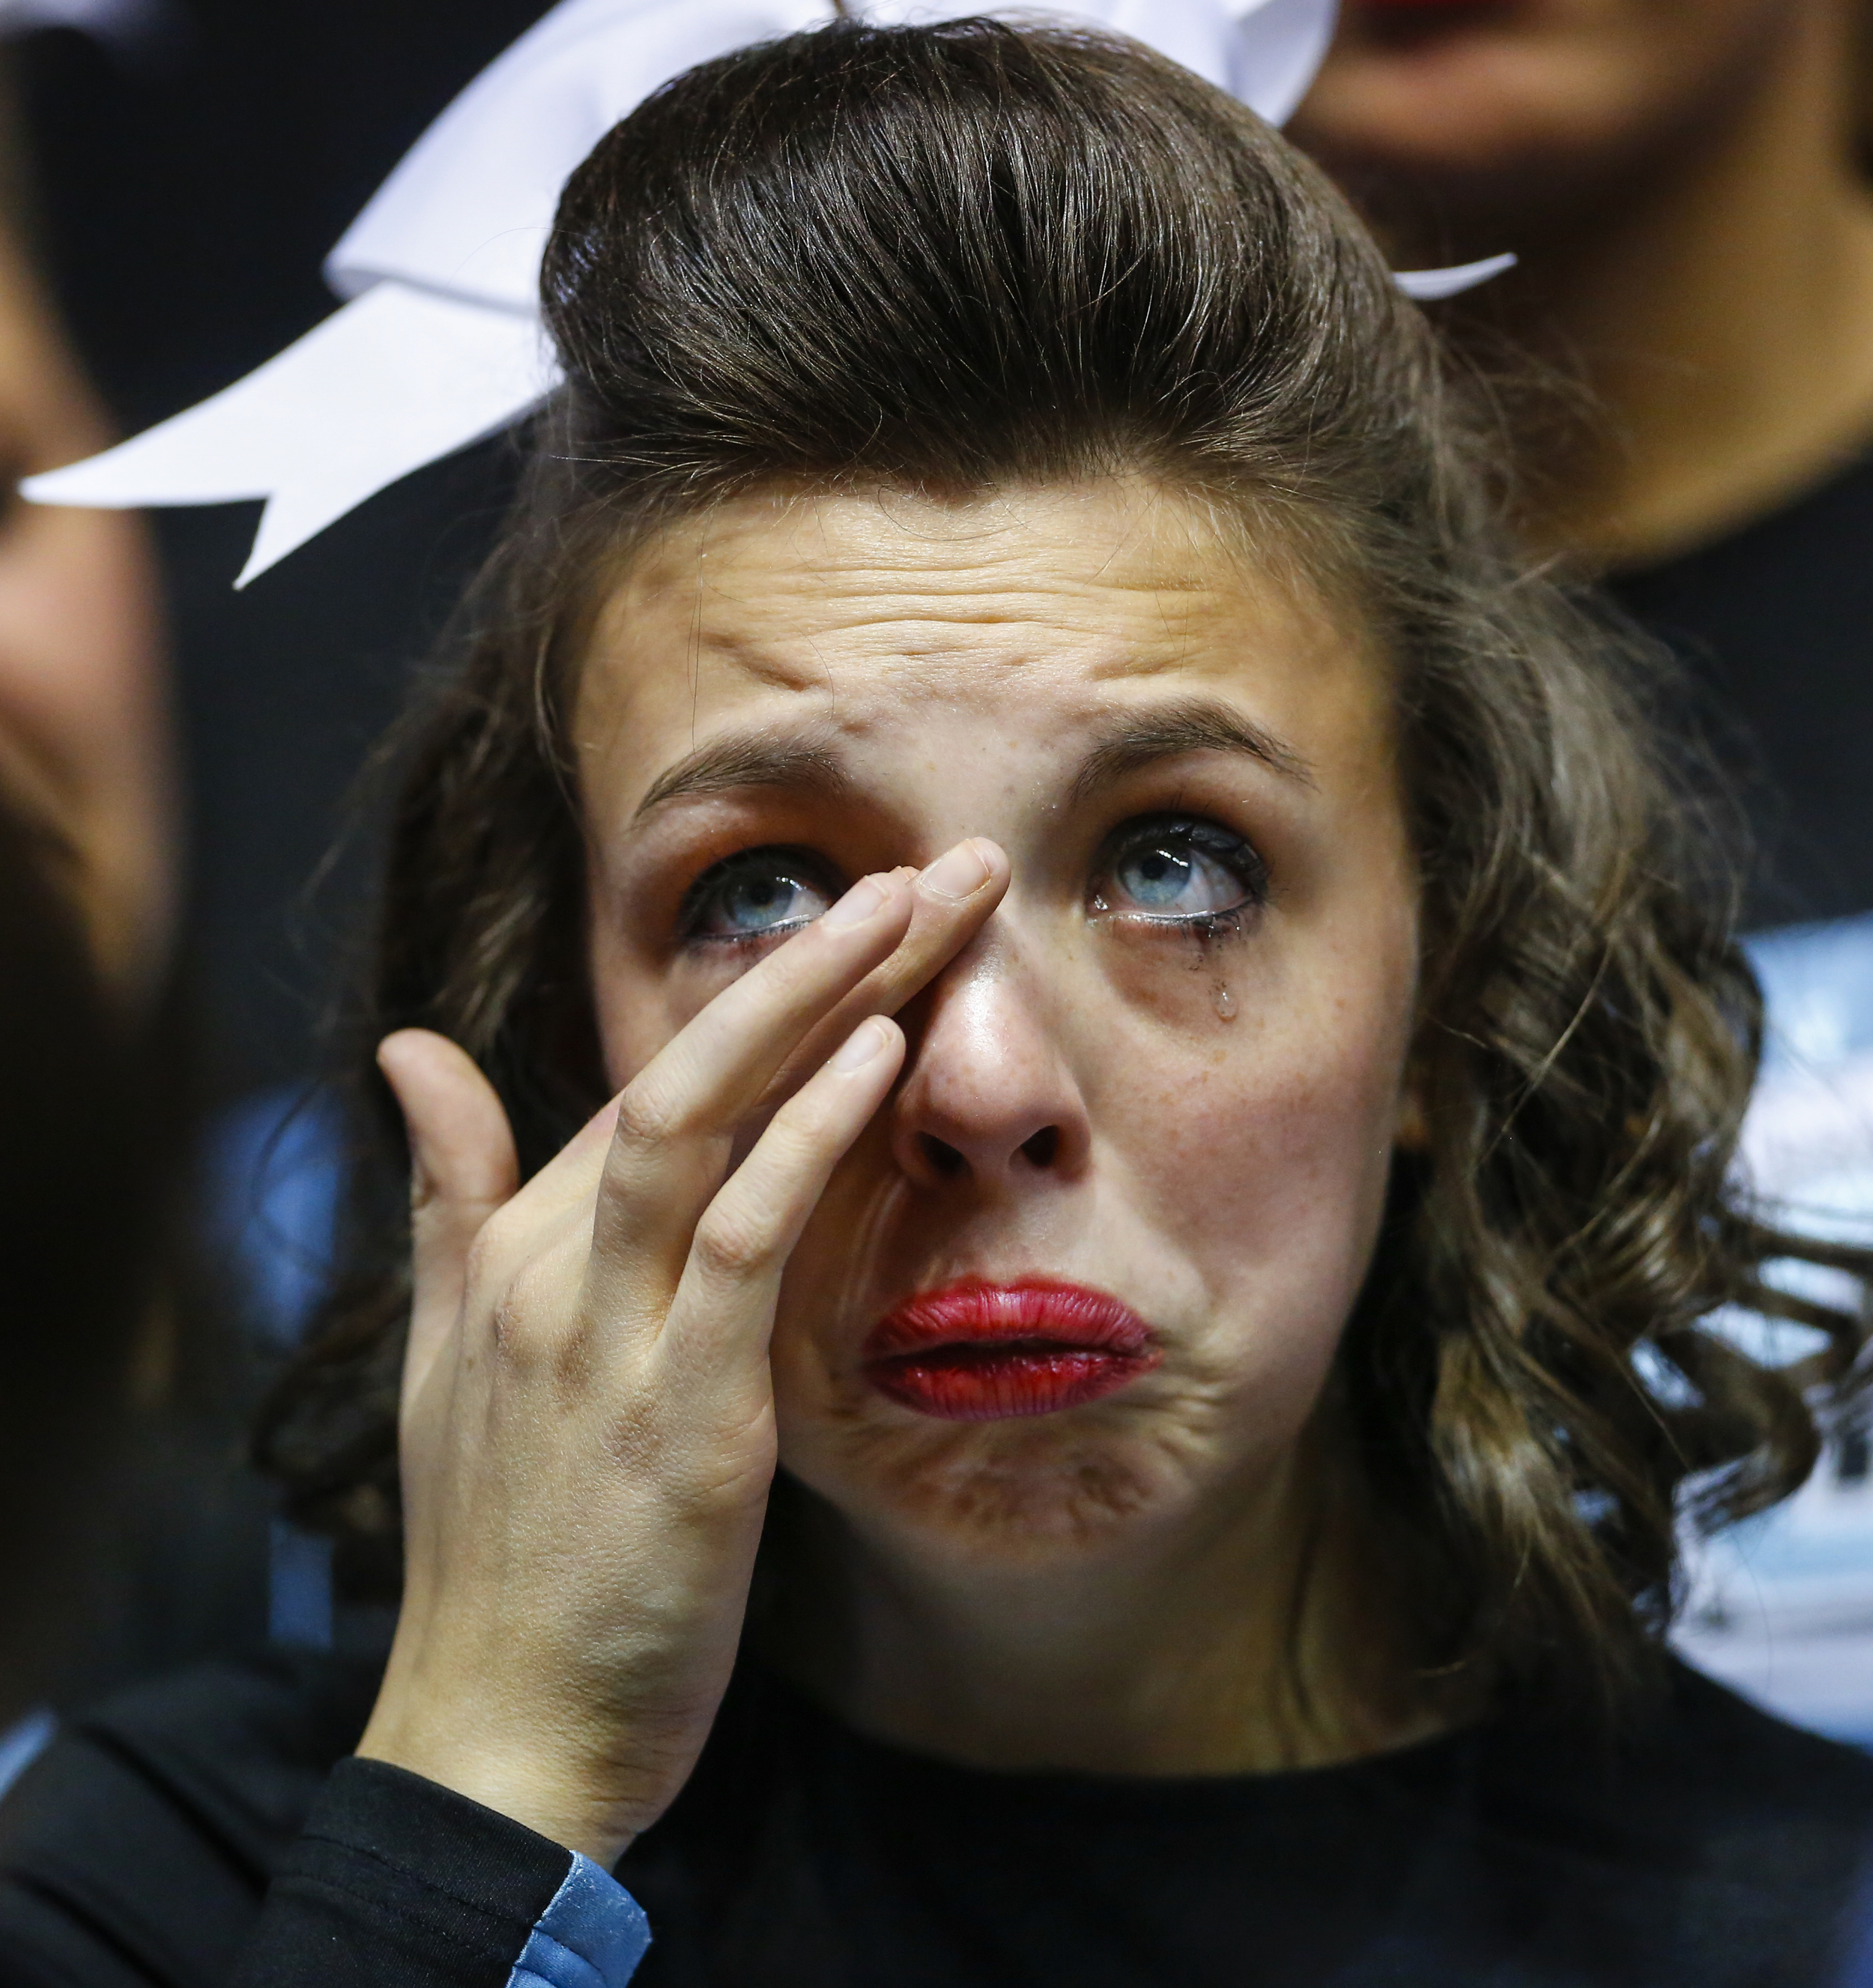 Maggie Kleine-Kracht, a Senior cheerleader from Mercy Academy cheerleading team, cries along with her teammates after receiving second place in class 1A-Large at the Kentucky High School Athletic Association's  Competitive Cheer Championships on Saturday, Feb. 23, 2013 at E.A. Diddle Arena is Bowling Green, Ky.